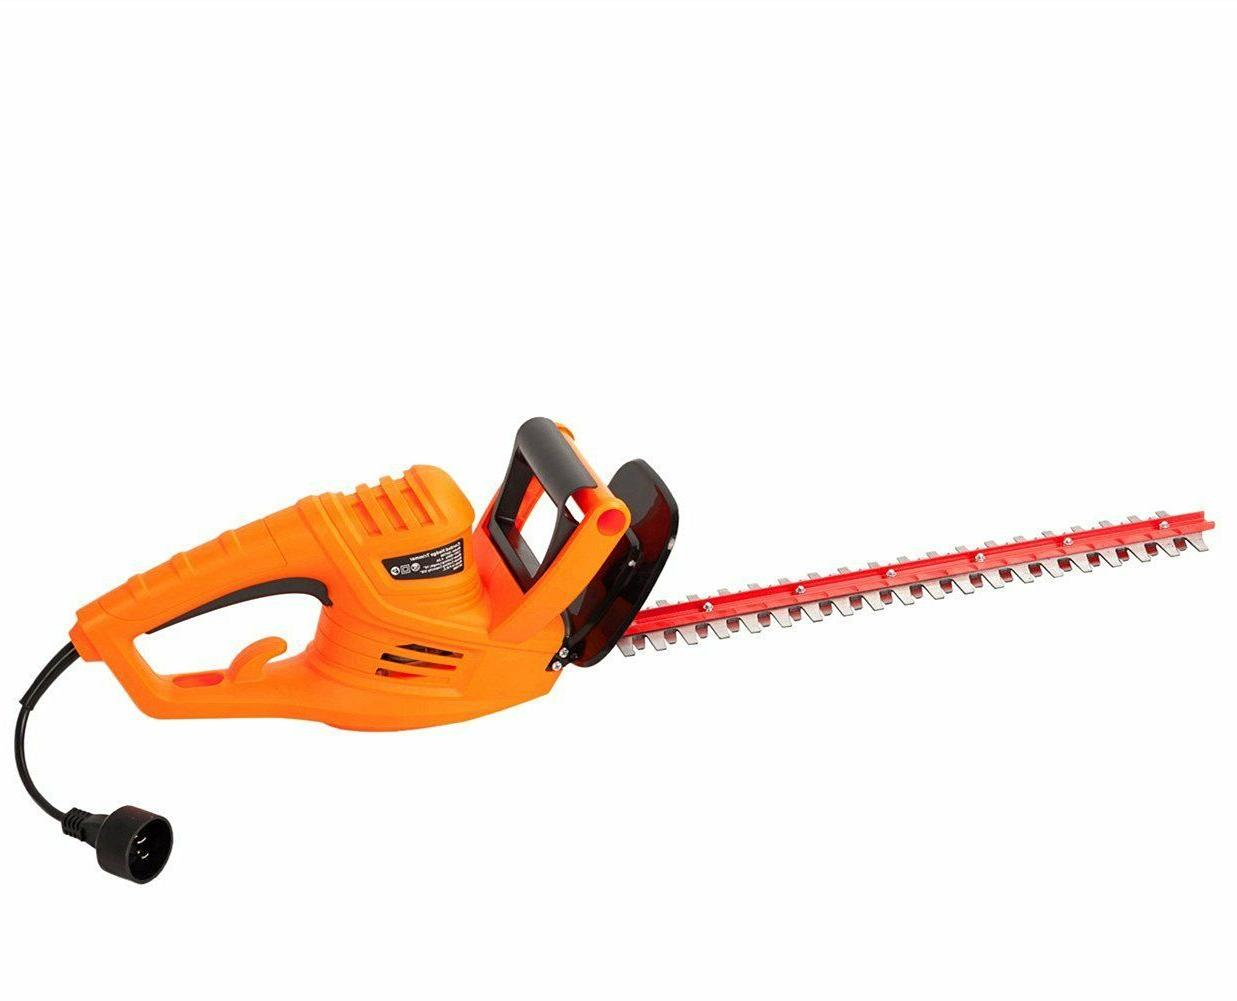 Garcare Corded Hedge Trimmer with Blade/Cover Included